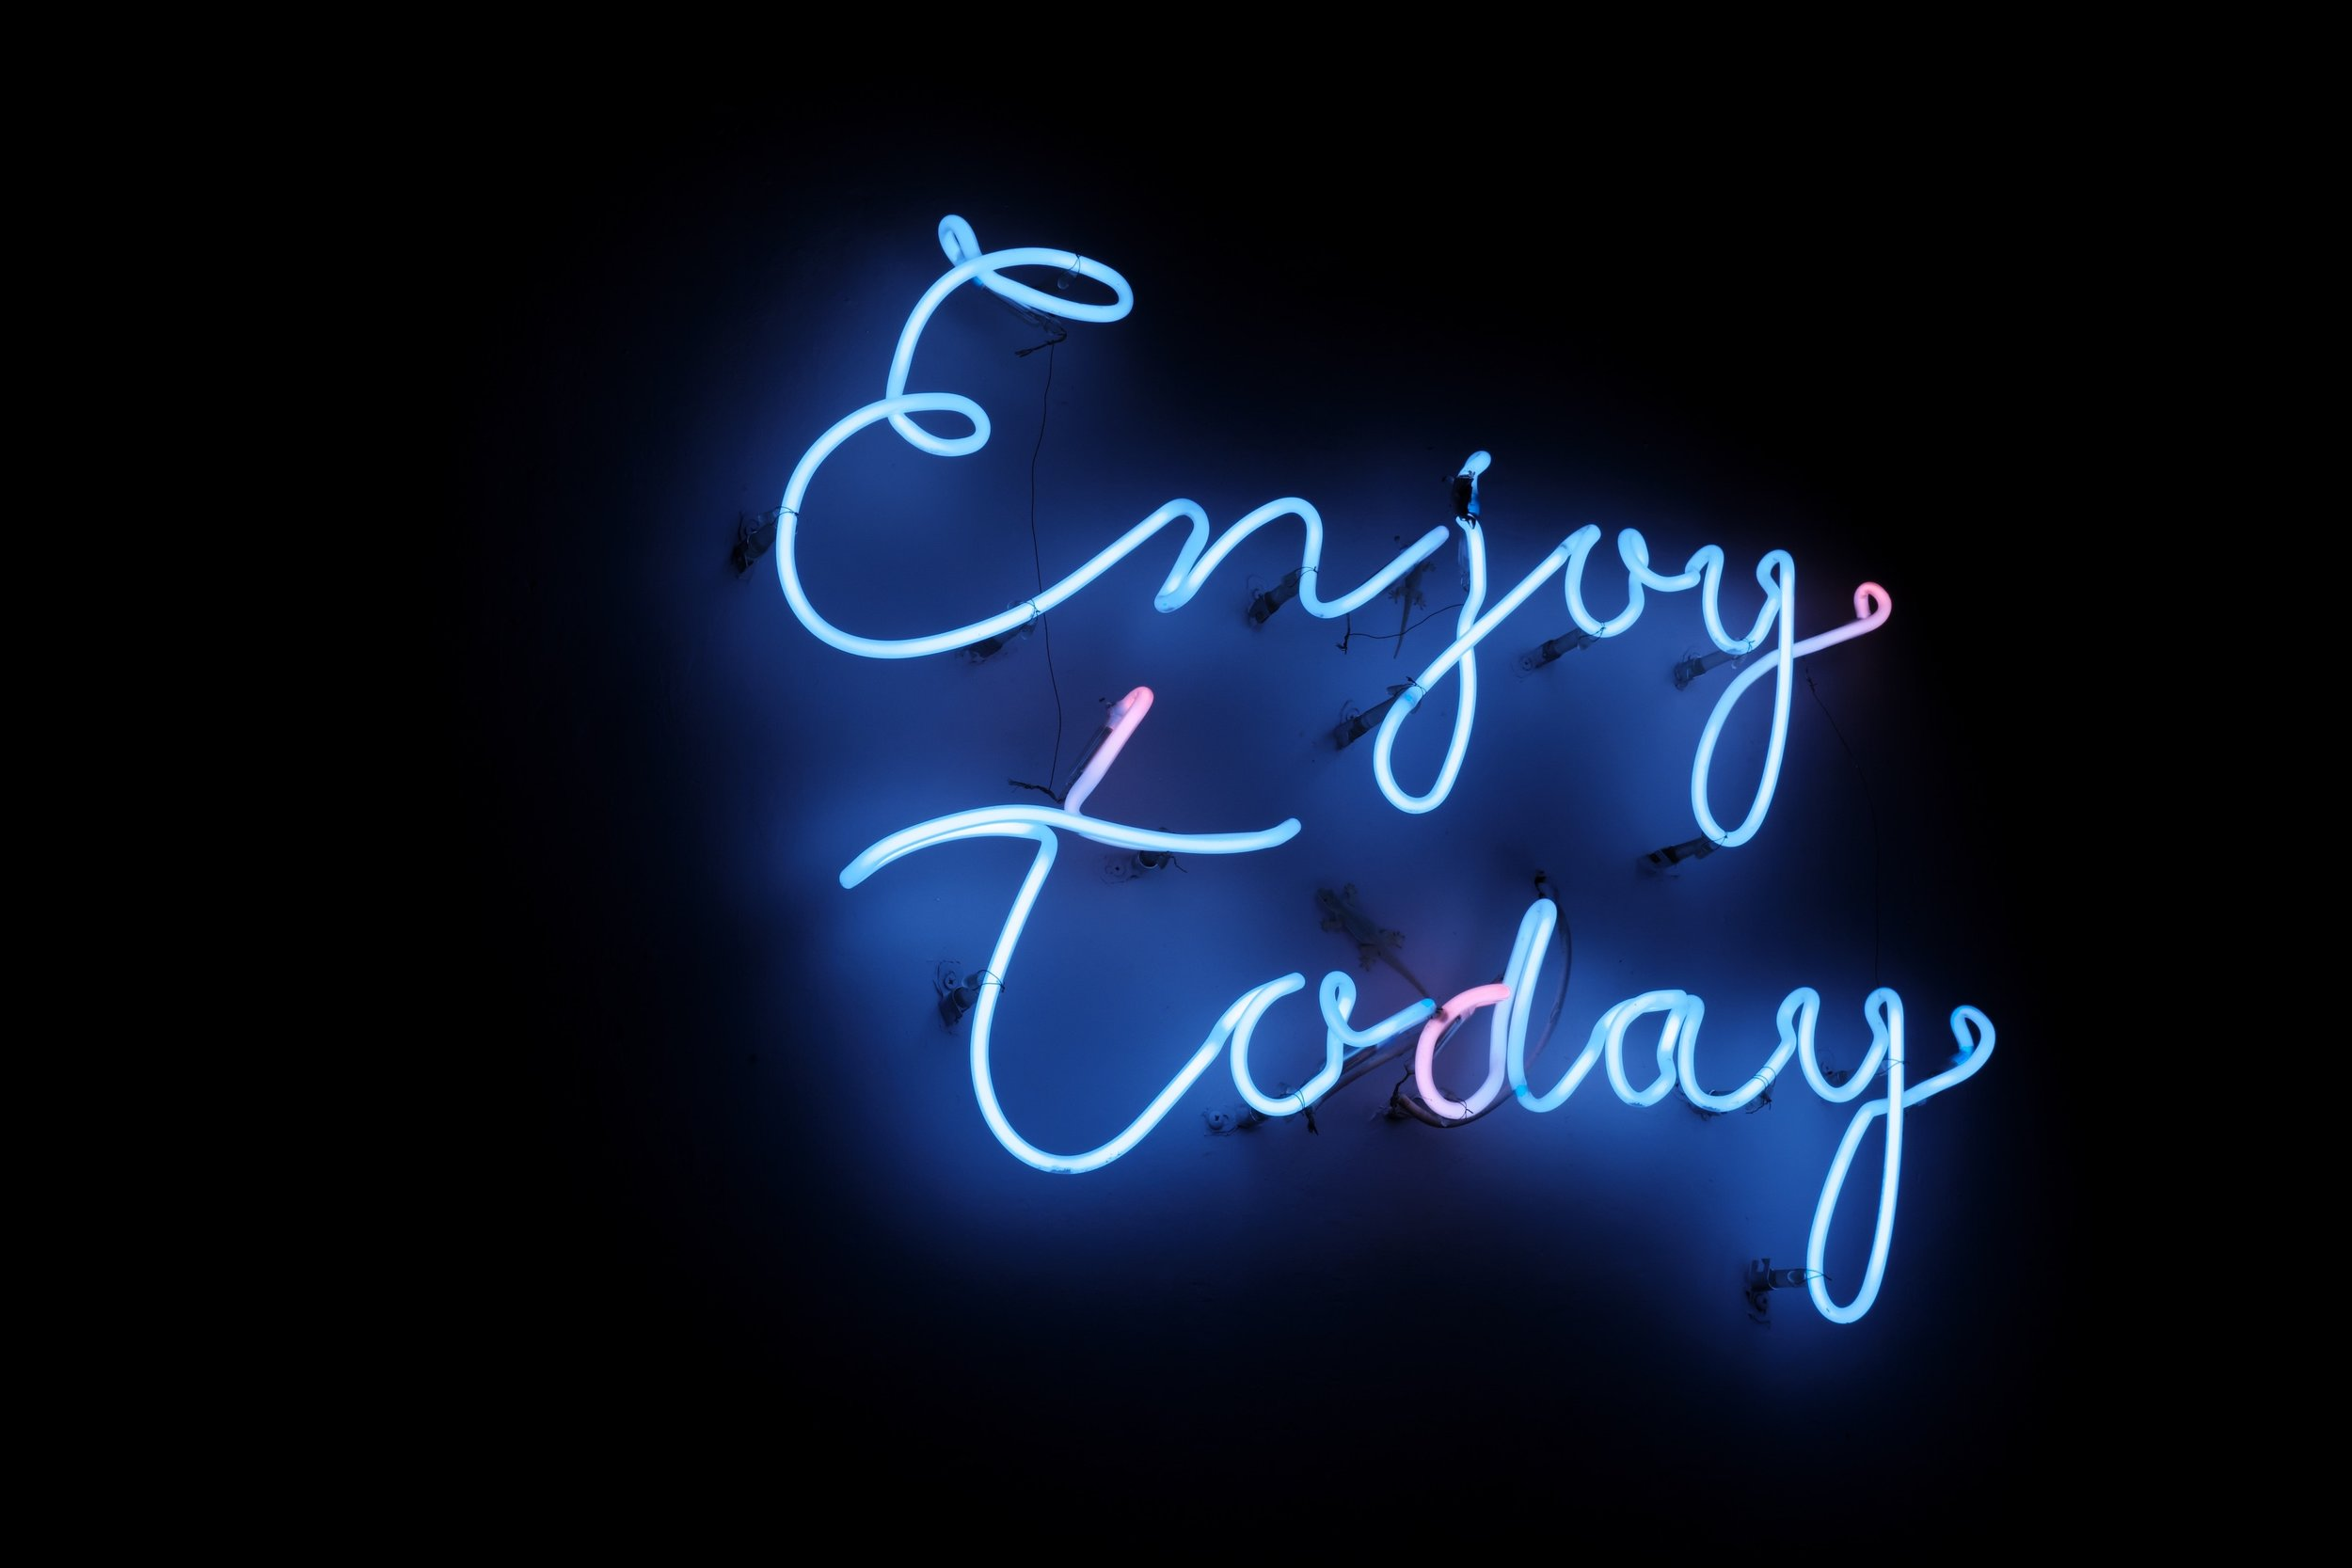 [Image Description: A neon blue sign that says 'Enjoy Today' hangs against a black wall.]